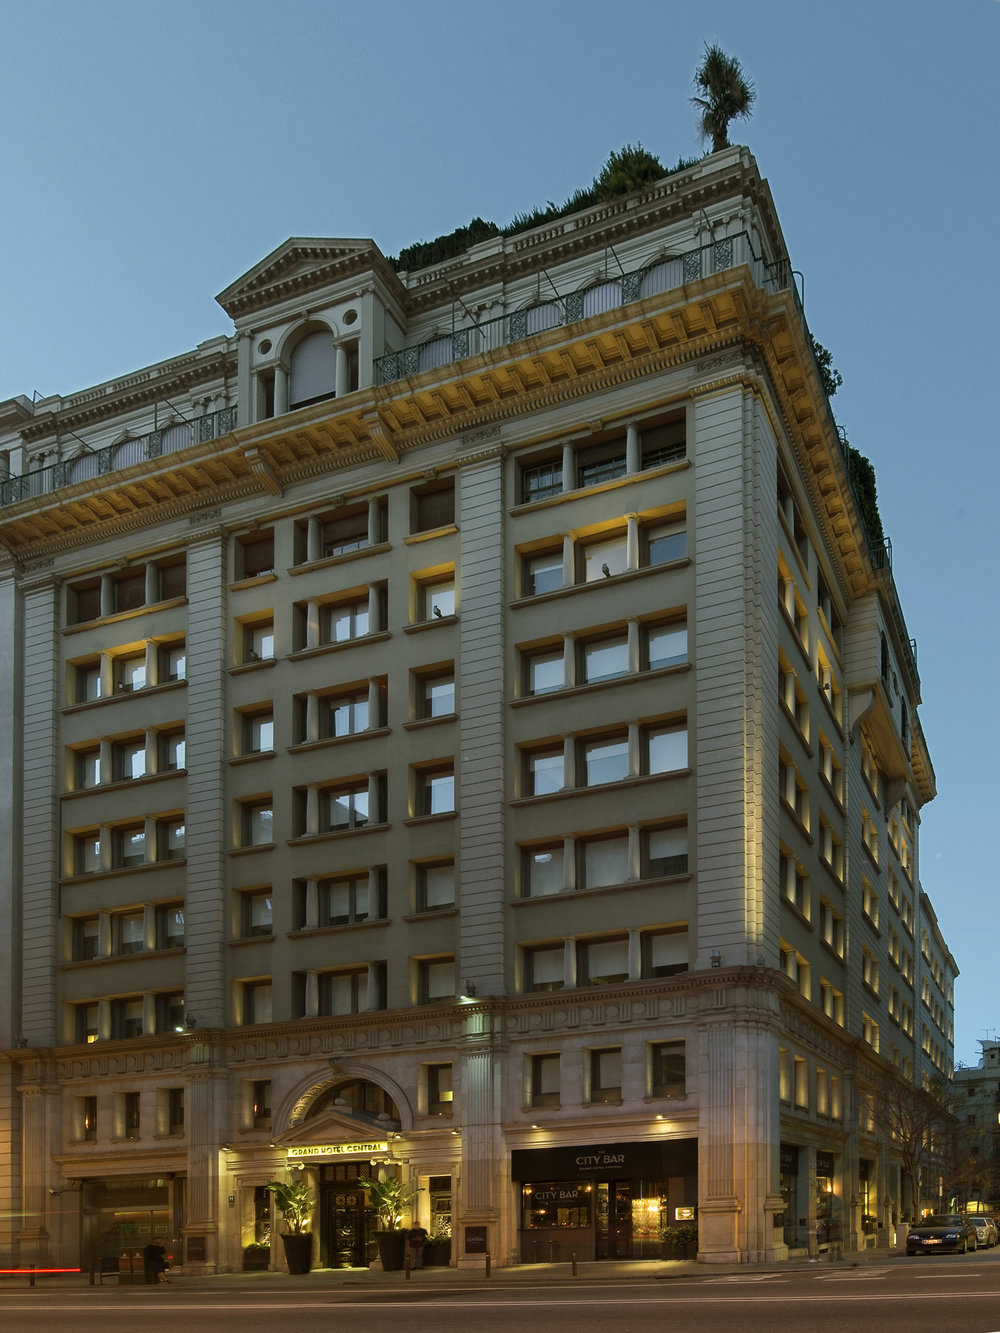 Facade-at-night.jpg